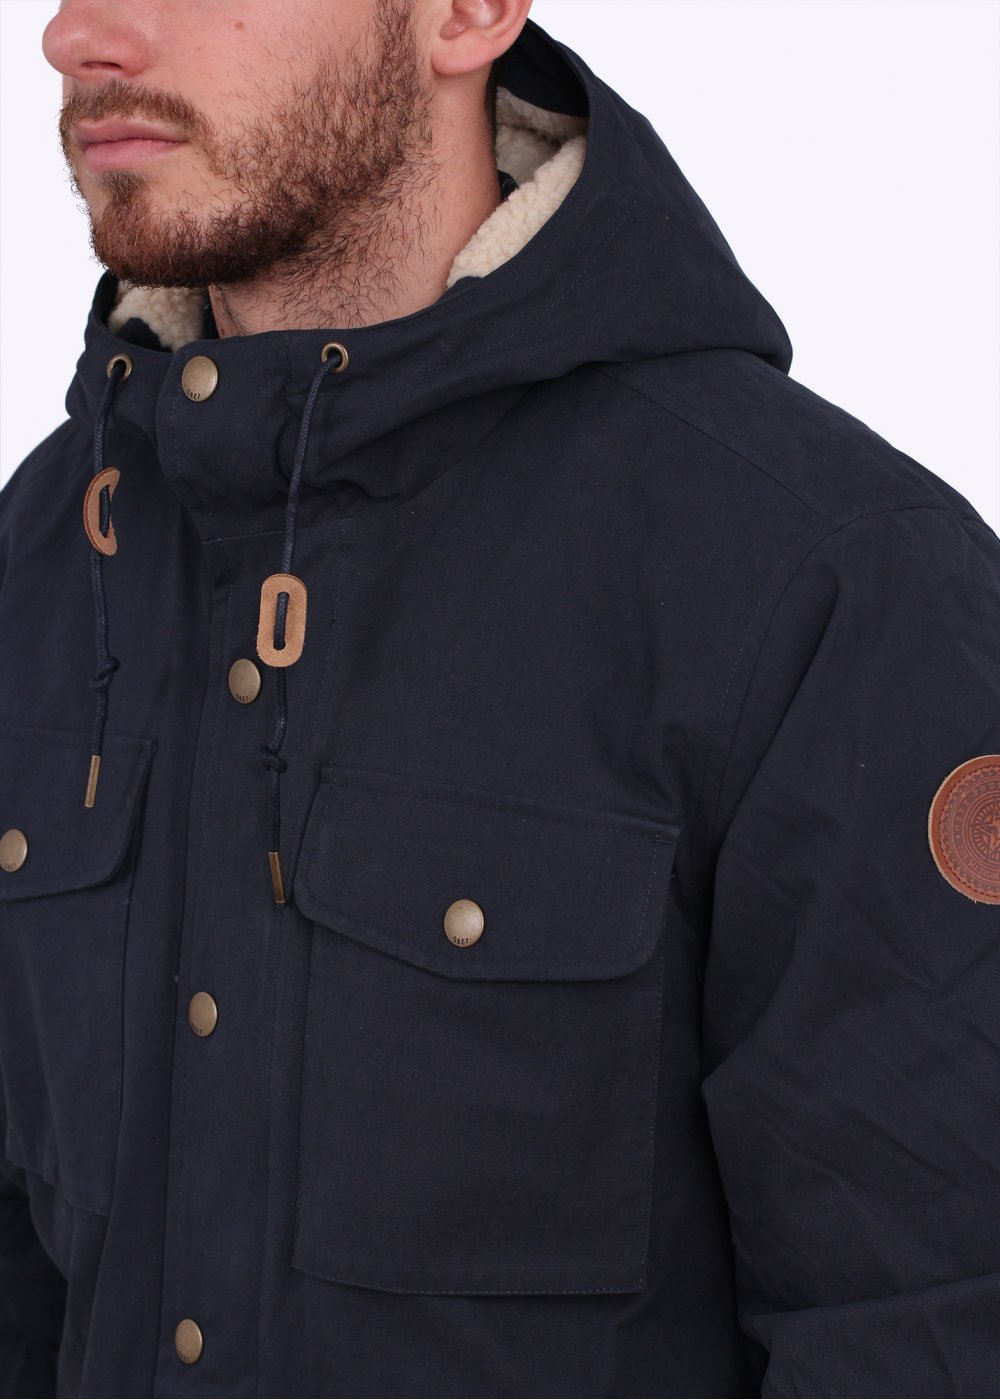 Obey Montclair Jacket - Work Navy